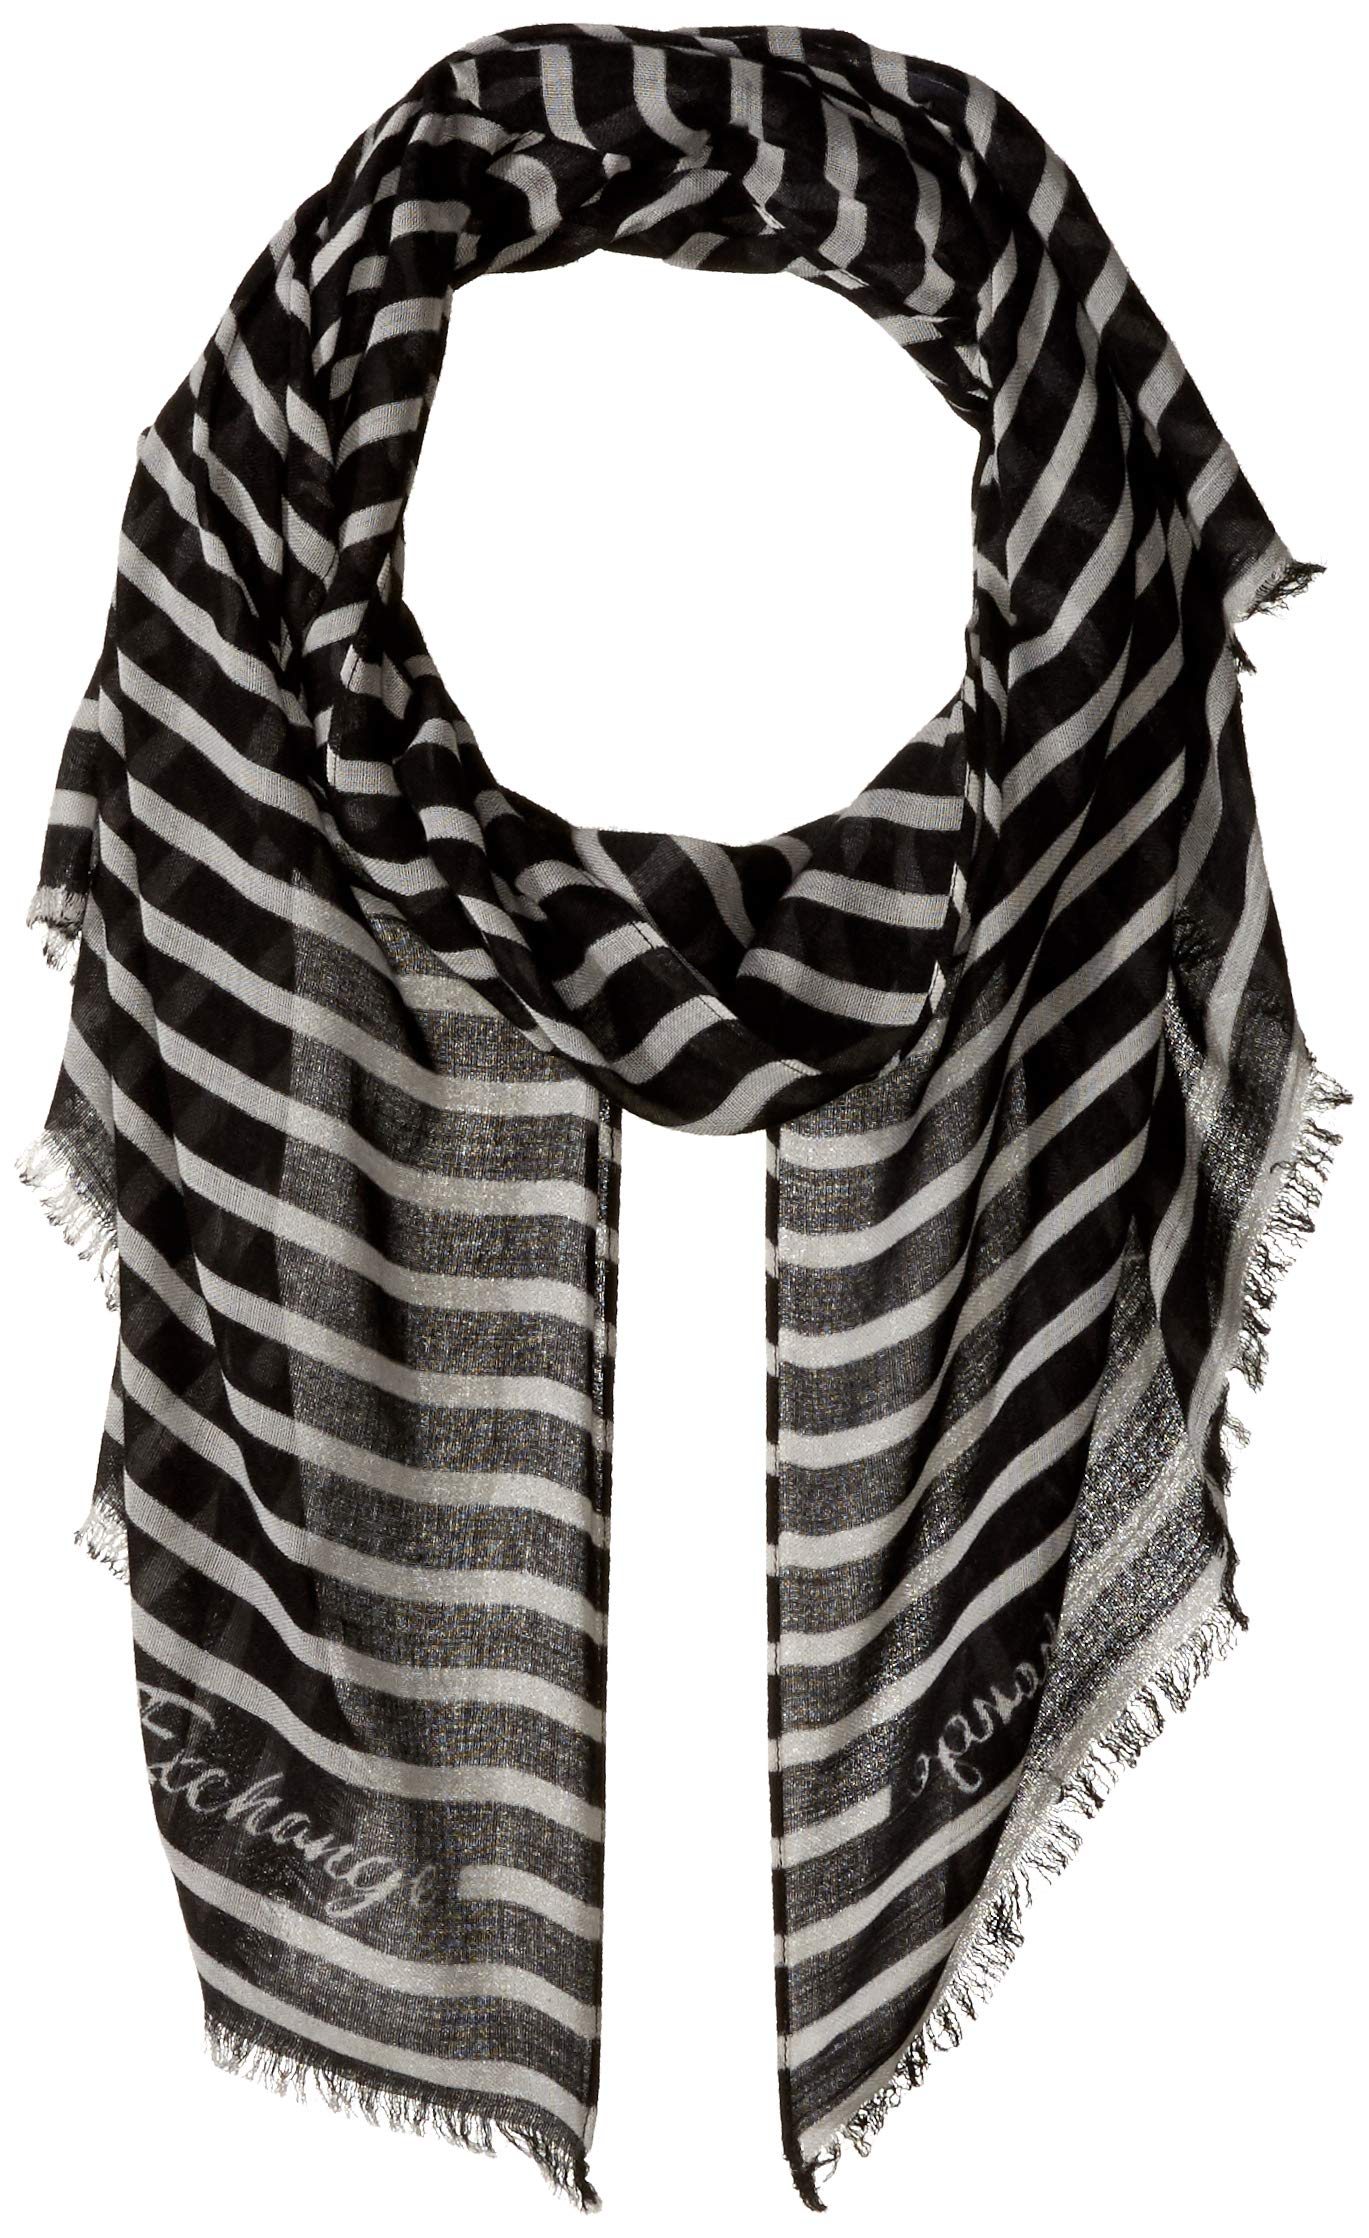 A|X Armani Exchange Women's Graphic Scarf, black/stripe off white, One Size by A|X Armani Exchange